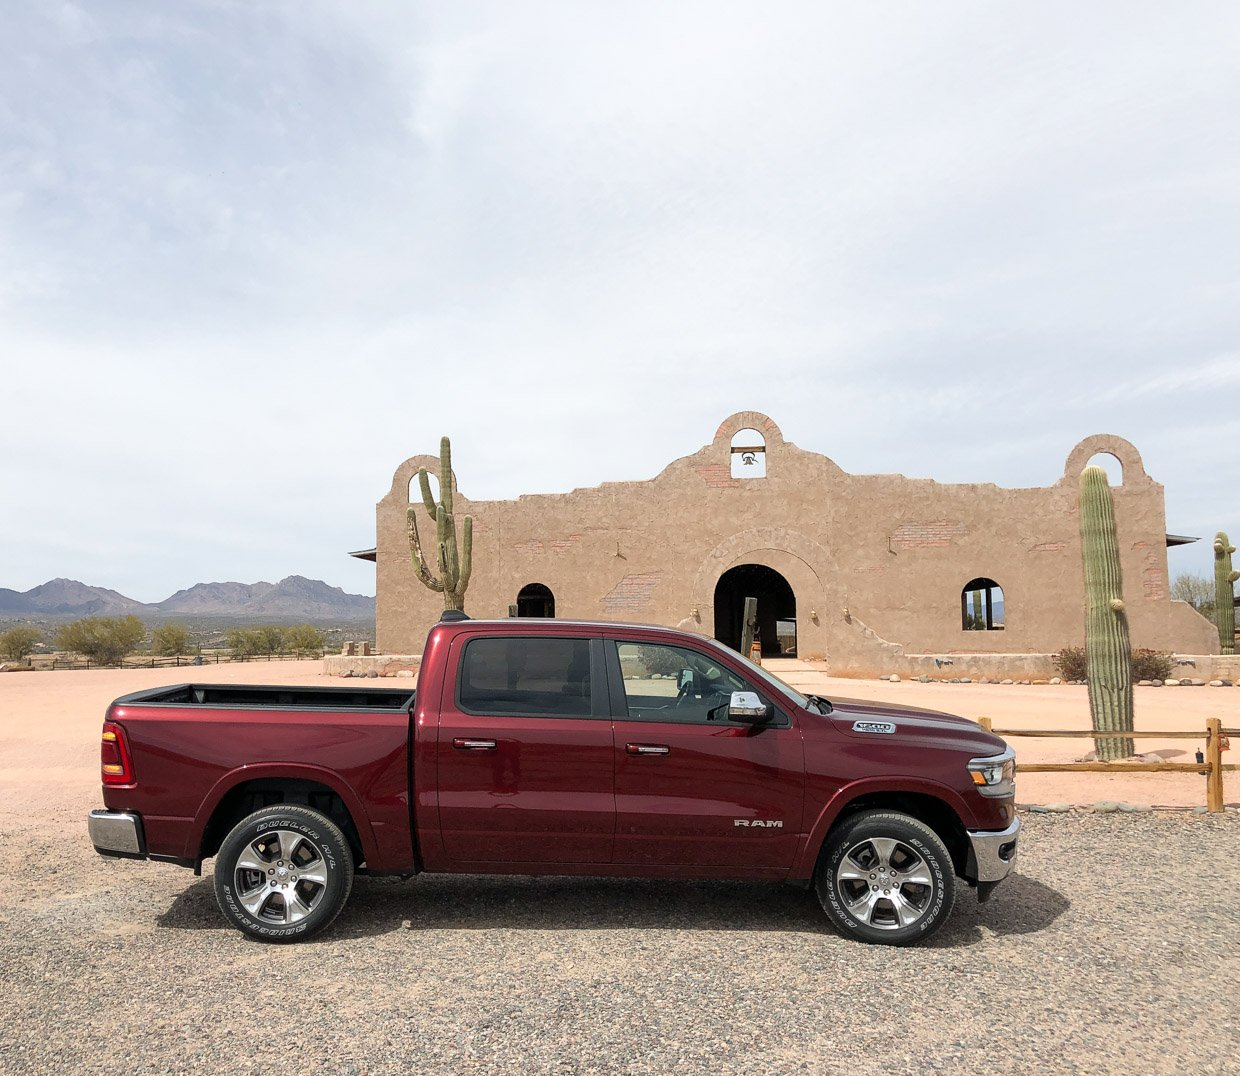 2019 Gmc Canyon Towing Capacity First Drive: 2019 RAM 1500 Pickup First Drive Review: The Strong